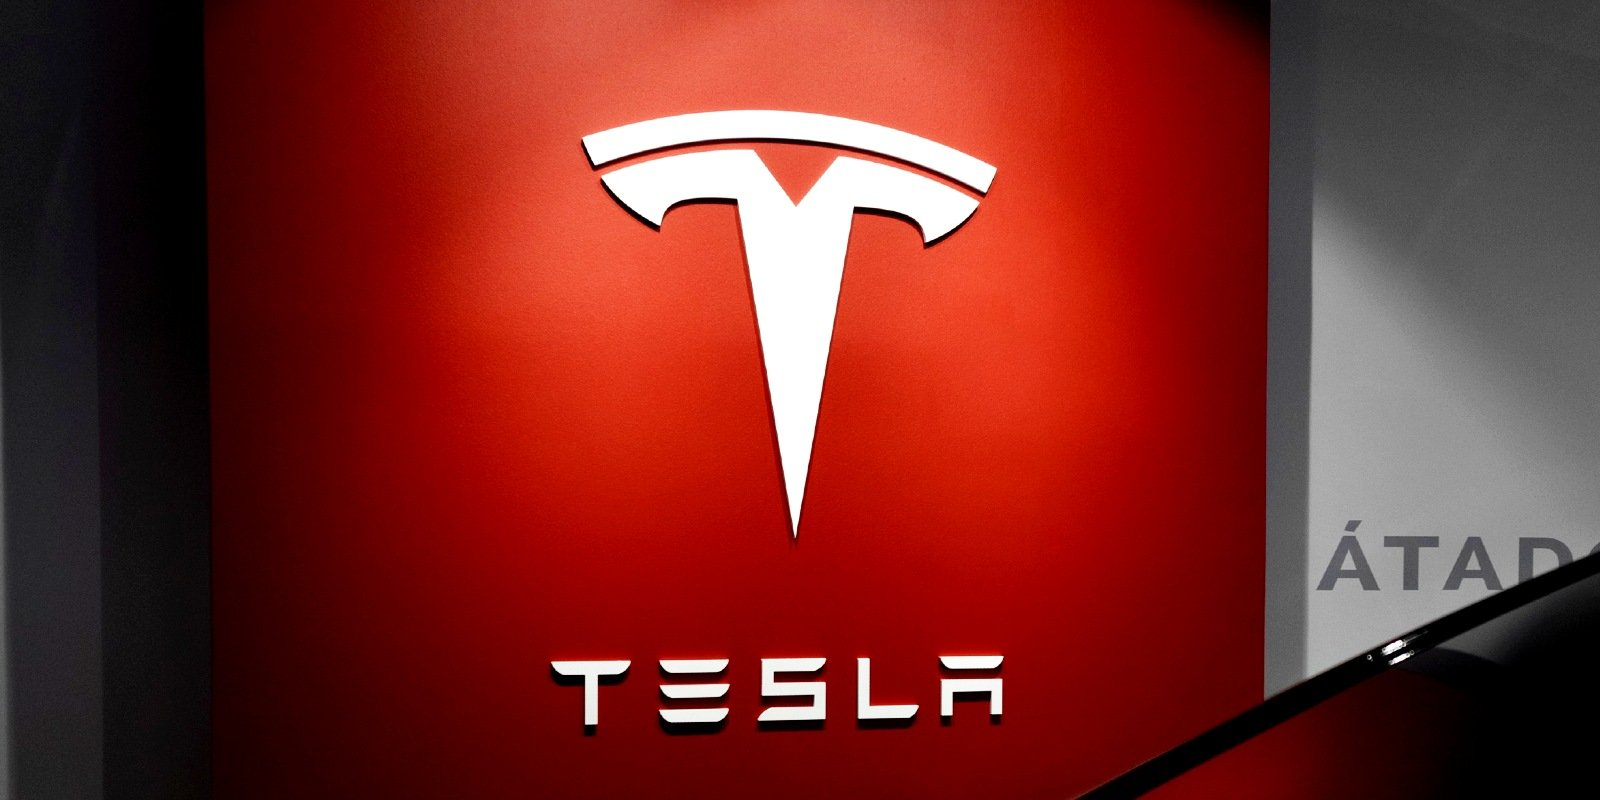 Russian pleads guilty to Tesla hacking and extortion attempt